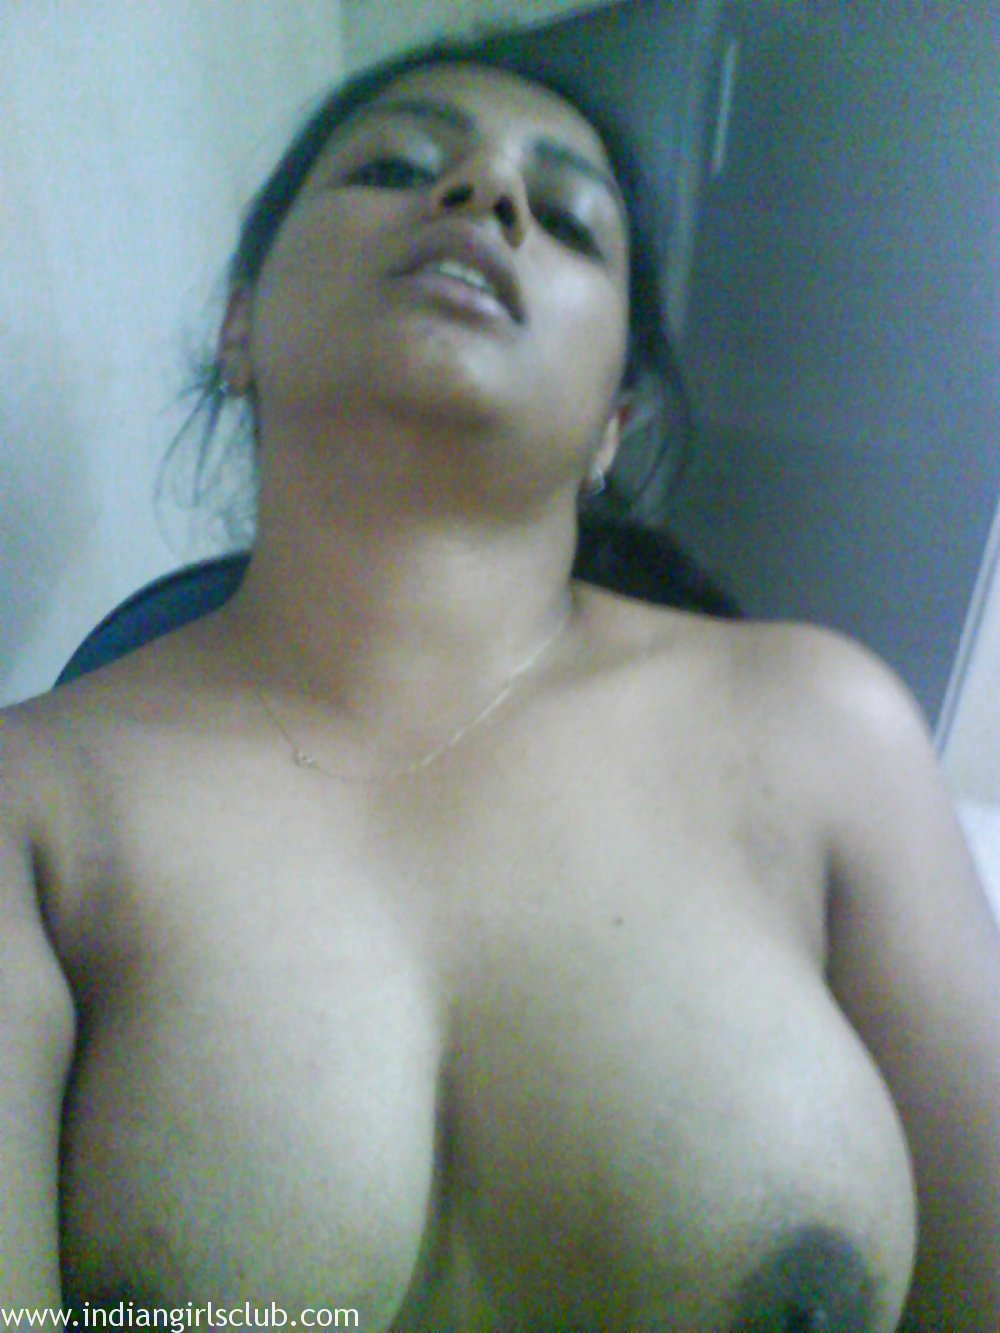 nude sexy indian girls photos